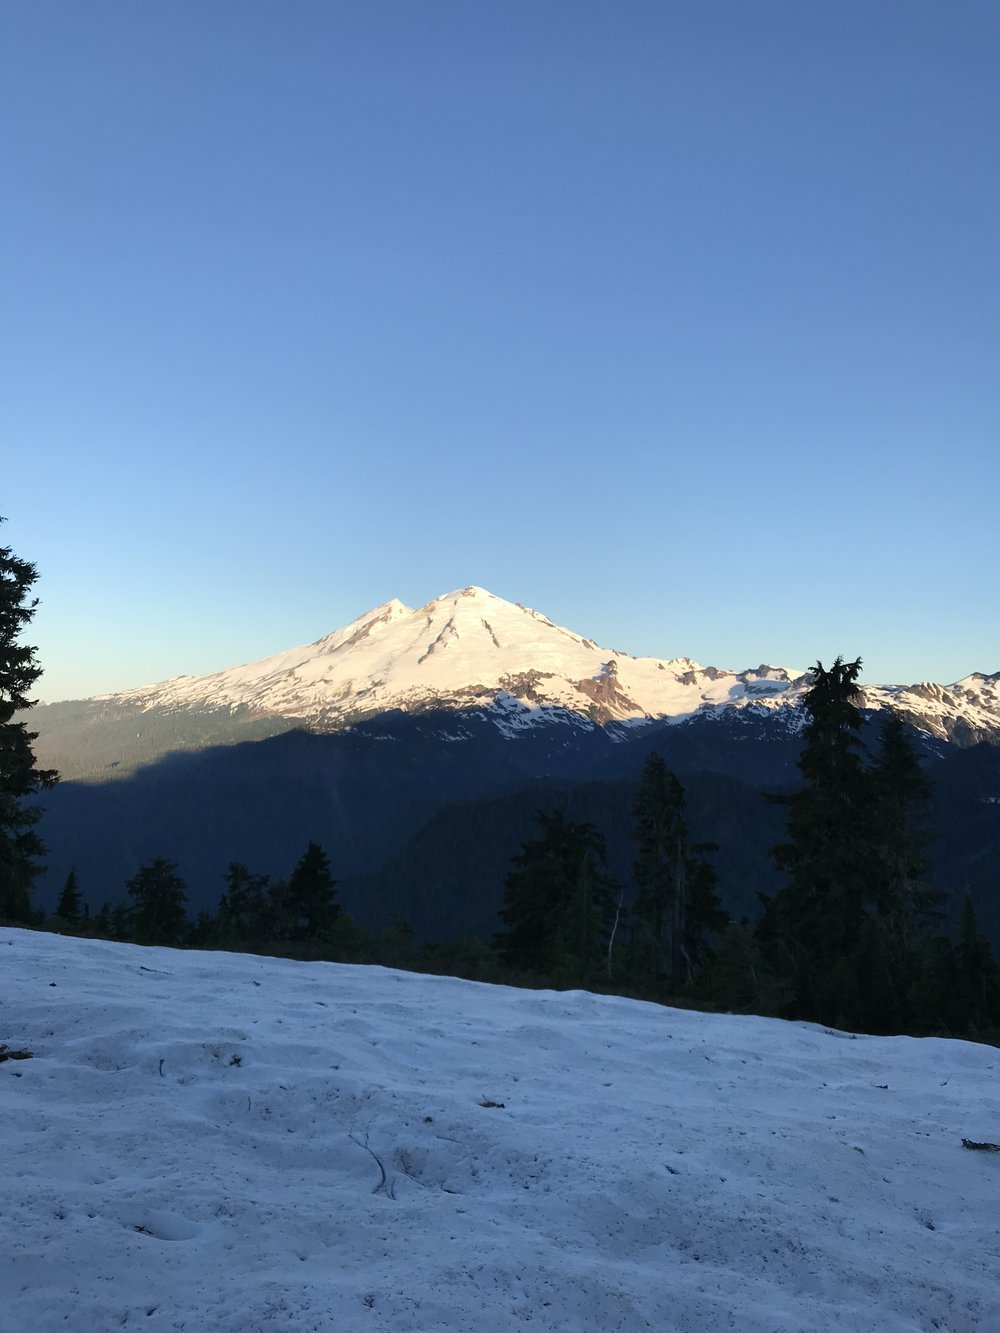 Mt. baker makes an appearance  - North Cascades, WA